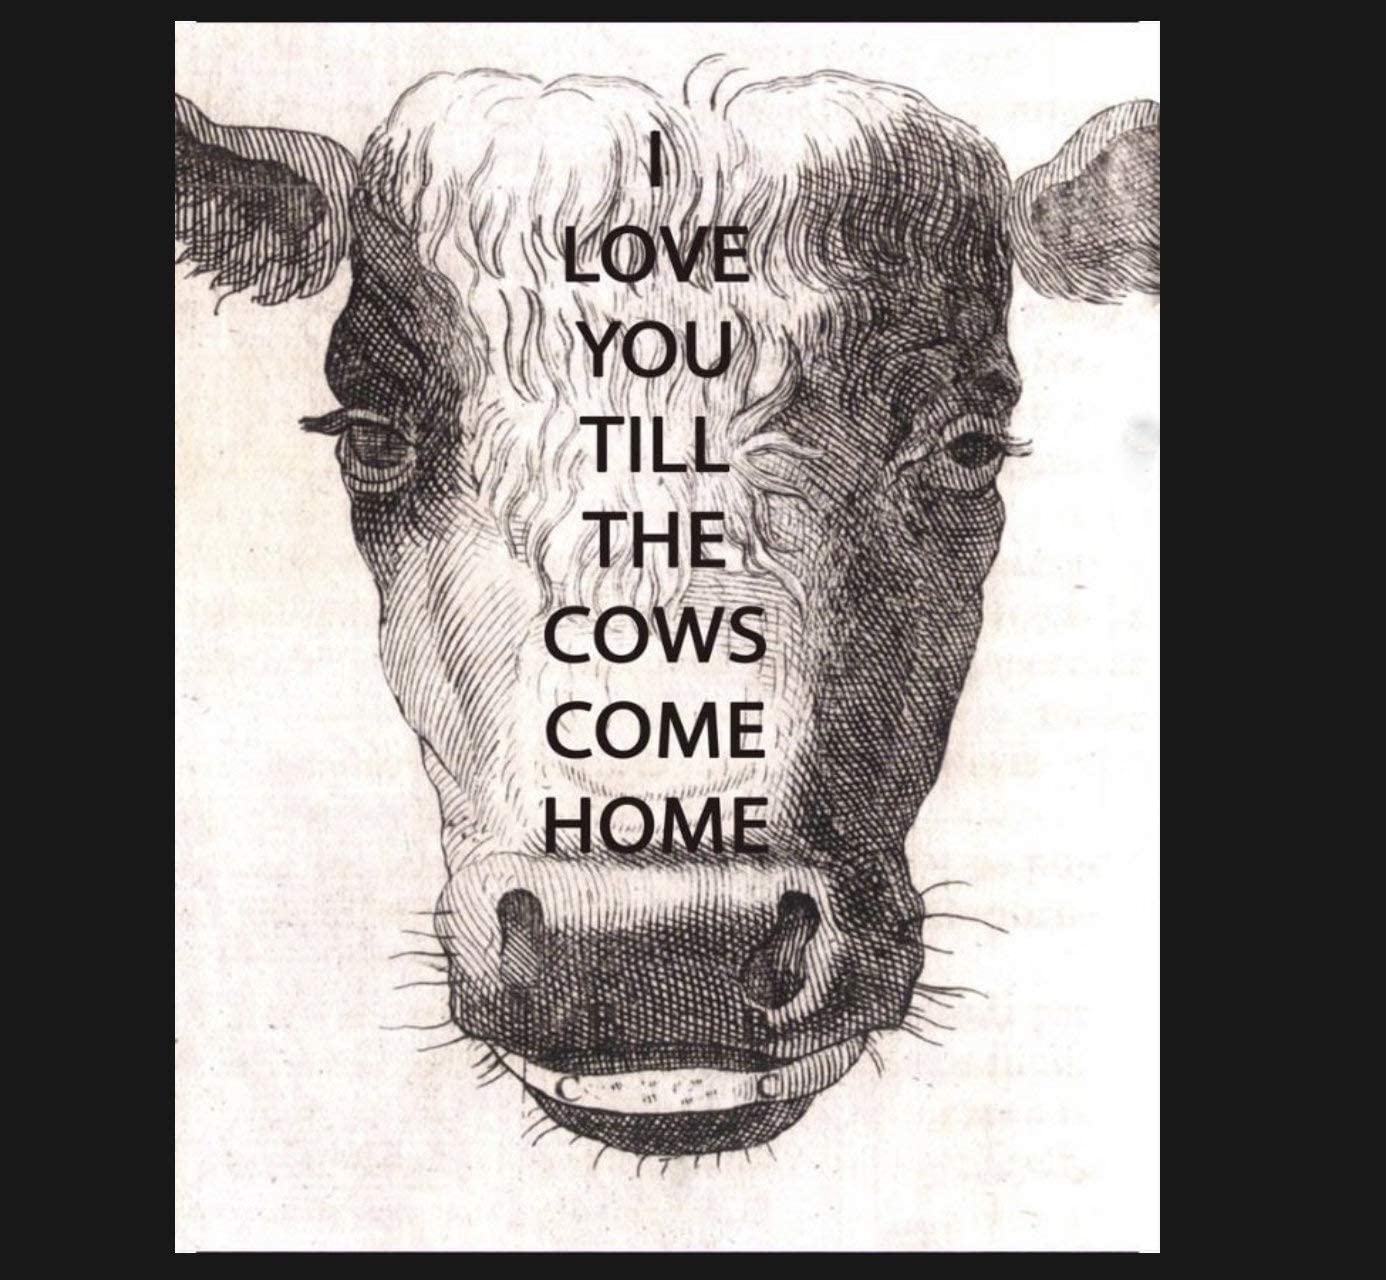 Metal SignAluminum Sign Vintage Love You Till The Cows Come Home Sign, Cow Sign. Retro Wall Art Iron Painting Yard Sign 8x12 Inches